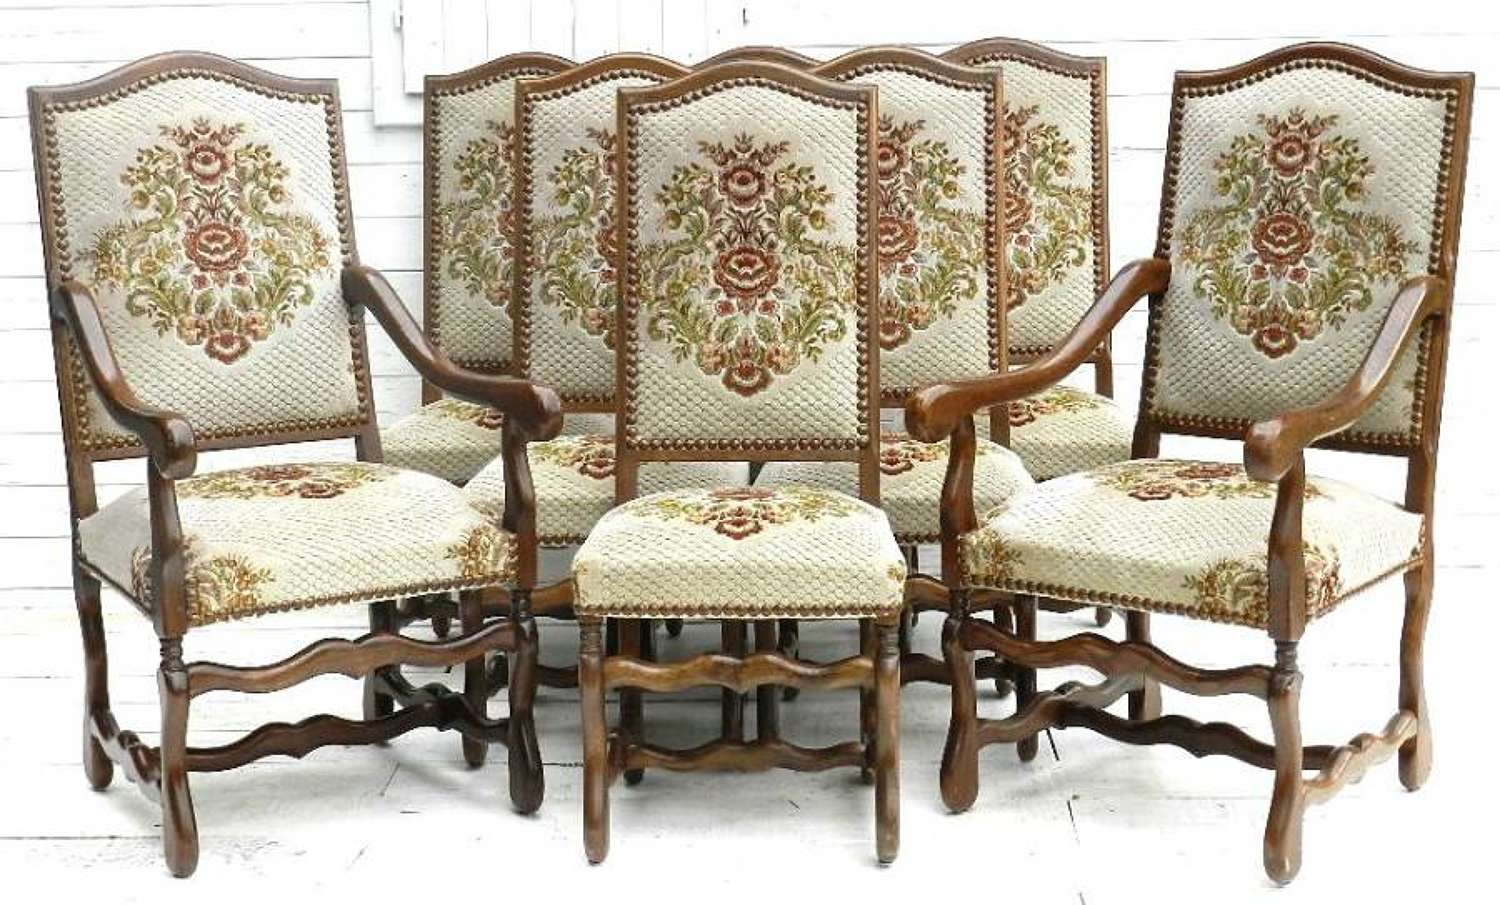 Set of 8 French Vintage `Os de Mouton` Louis Dining Chairs 6 + 2 Carvers Armchairs